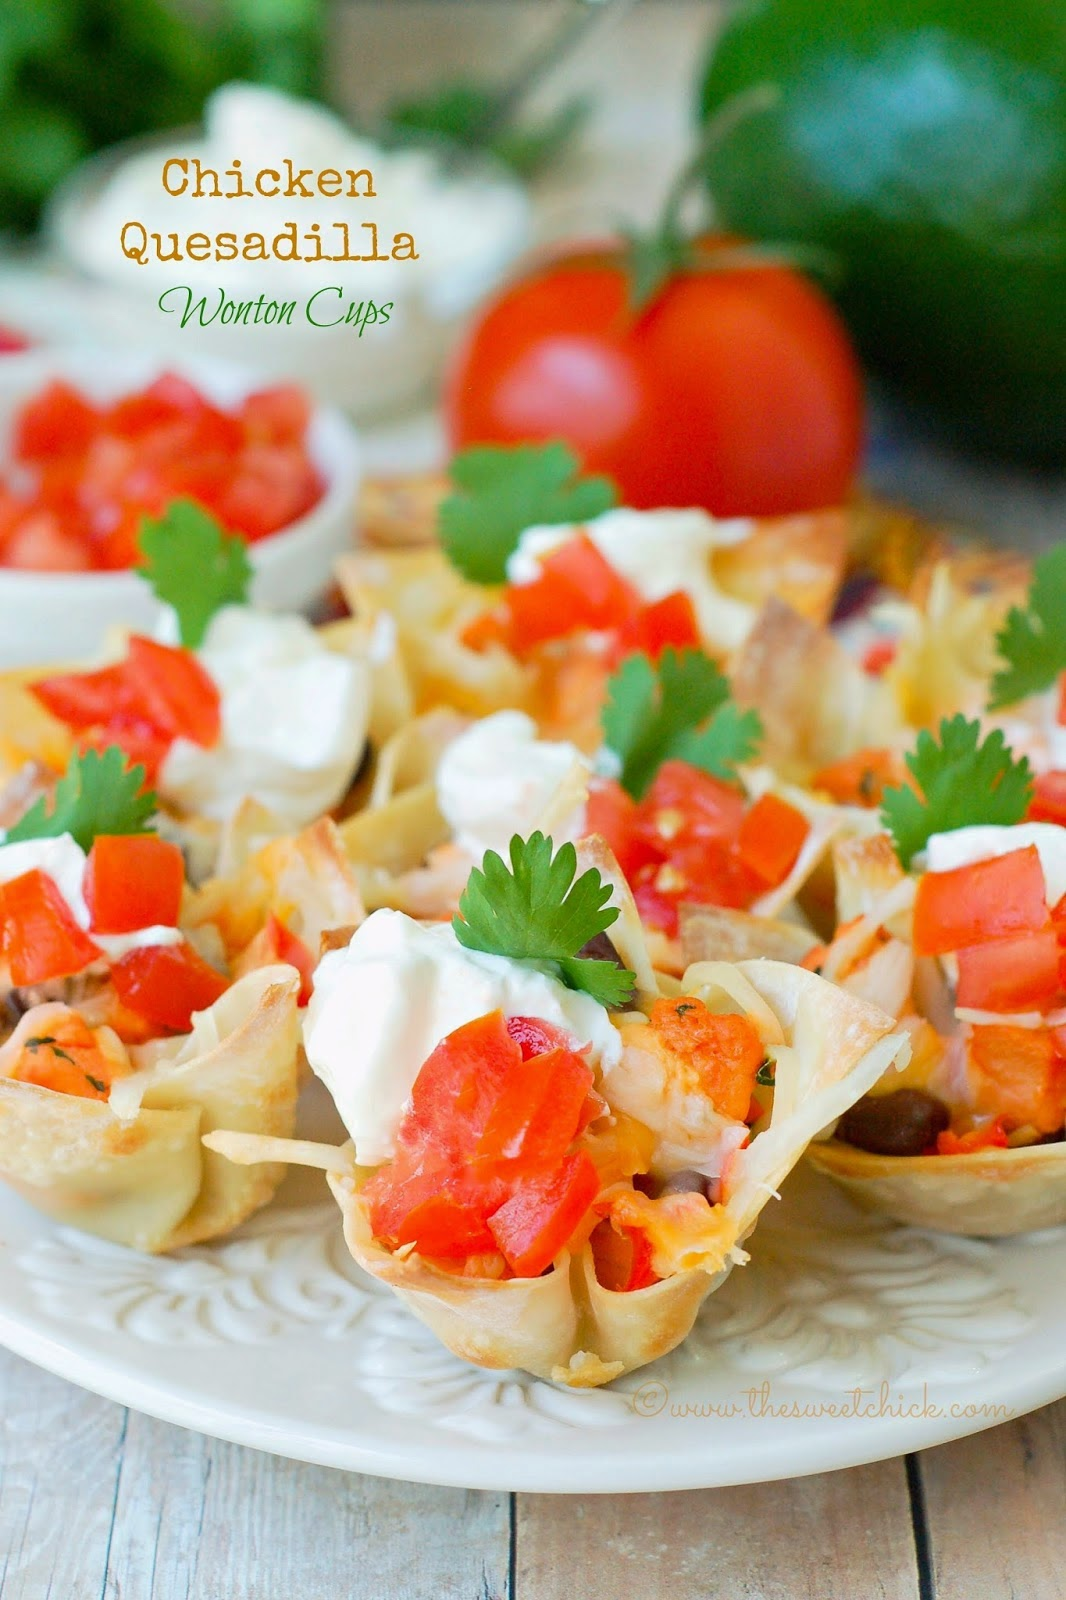 #superbowl #chickencordonbleu #wontoncups #appetizers #partyfood